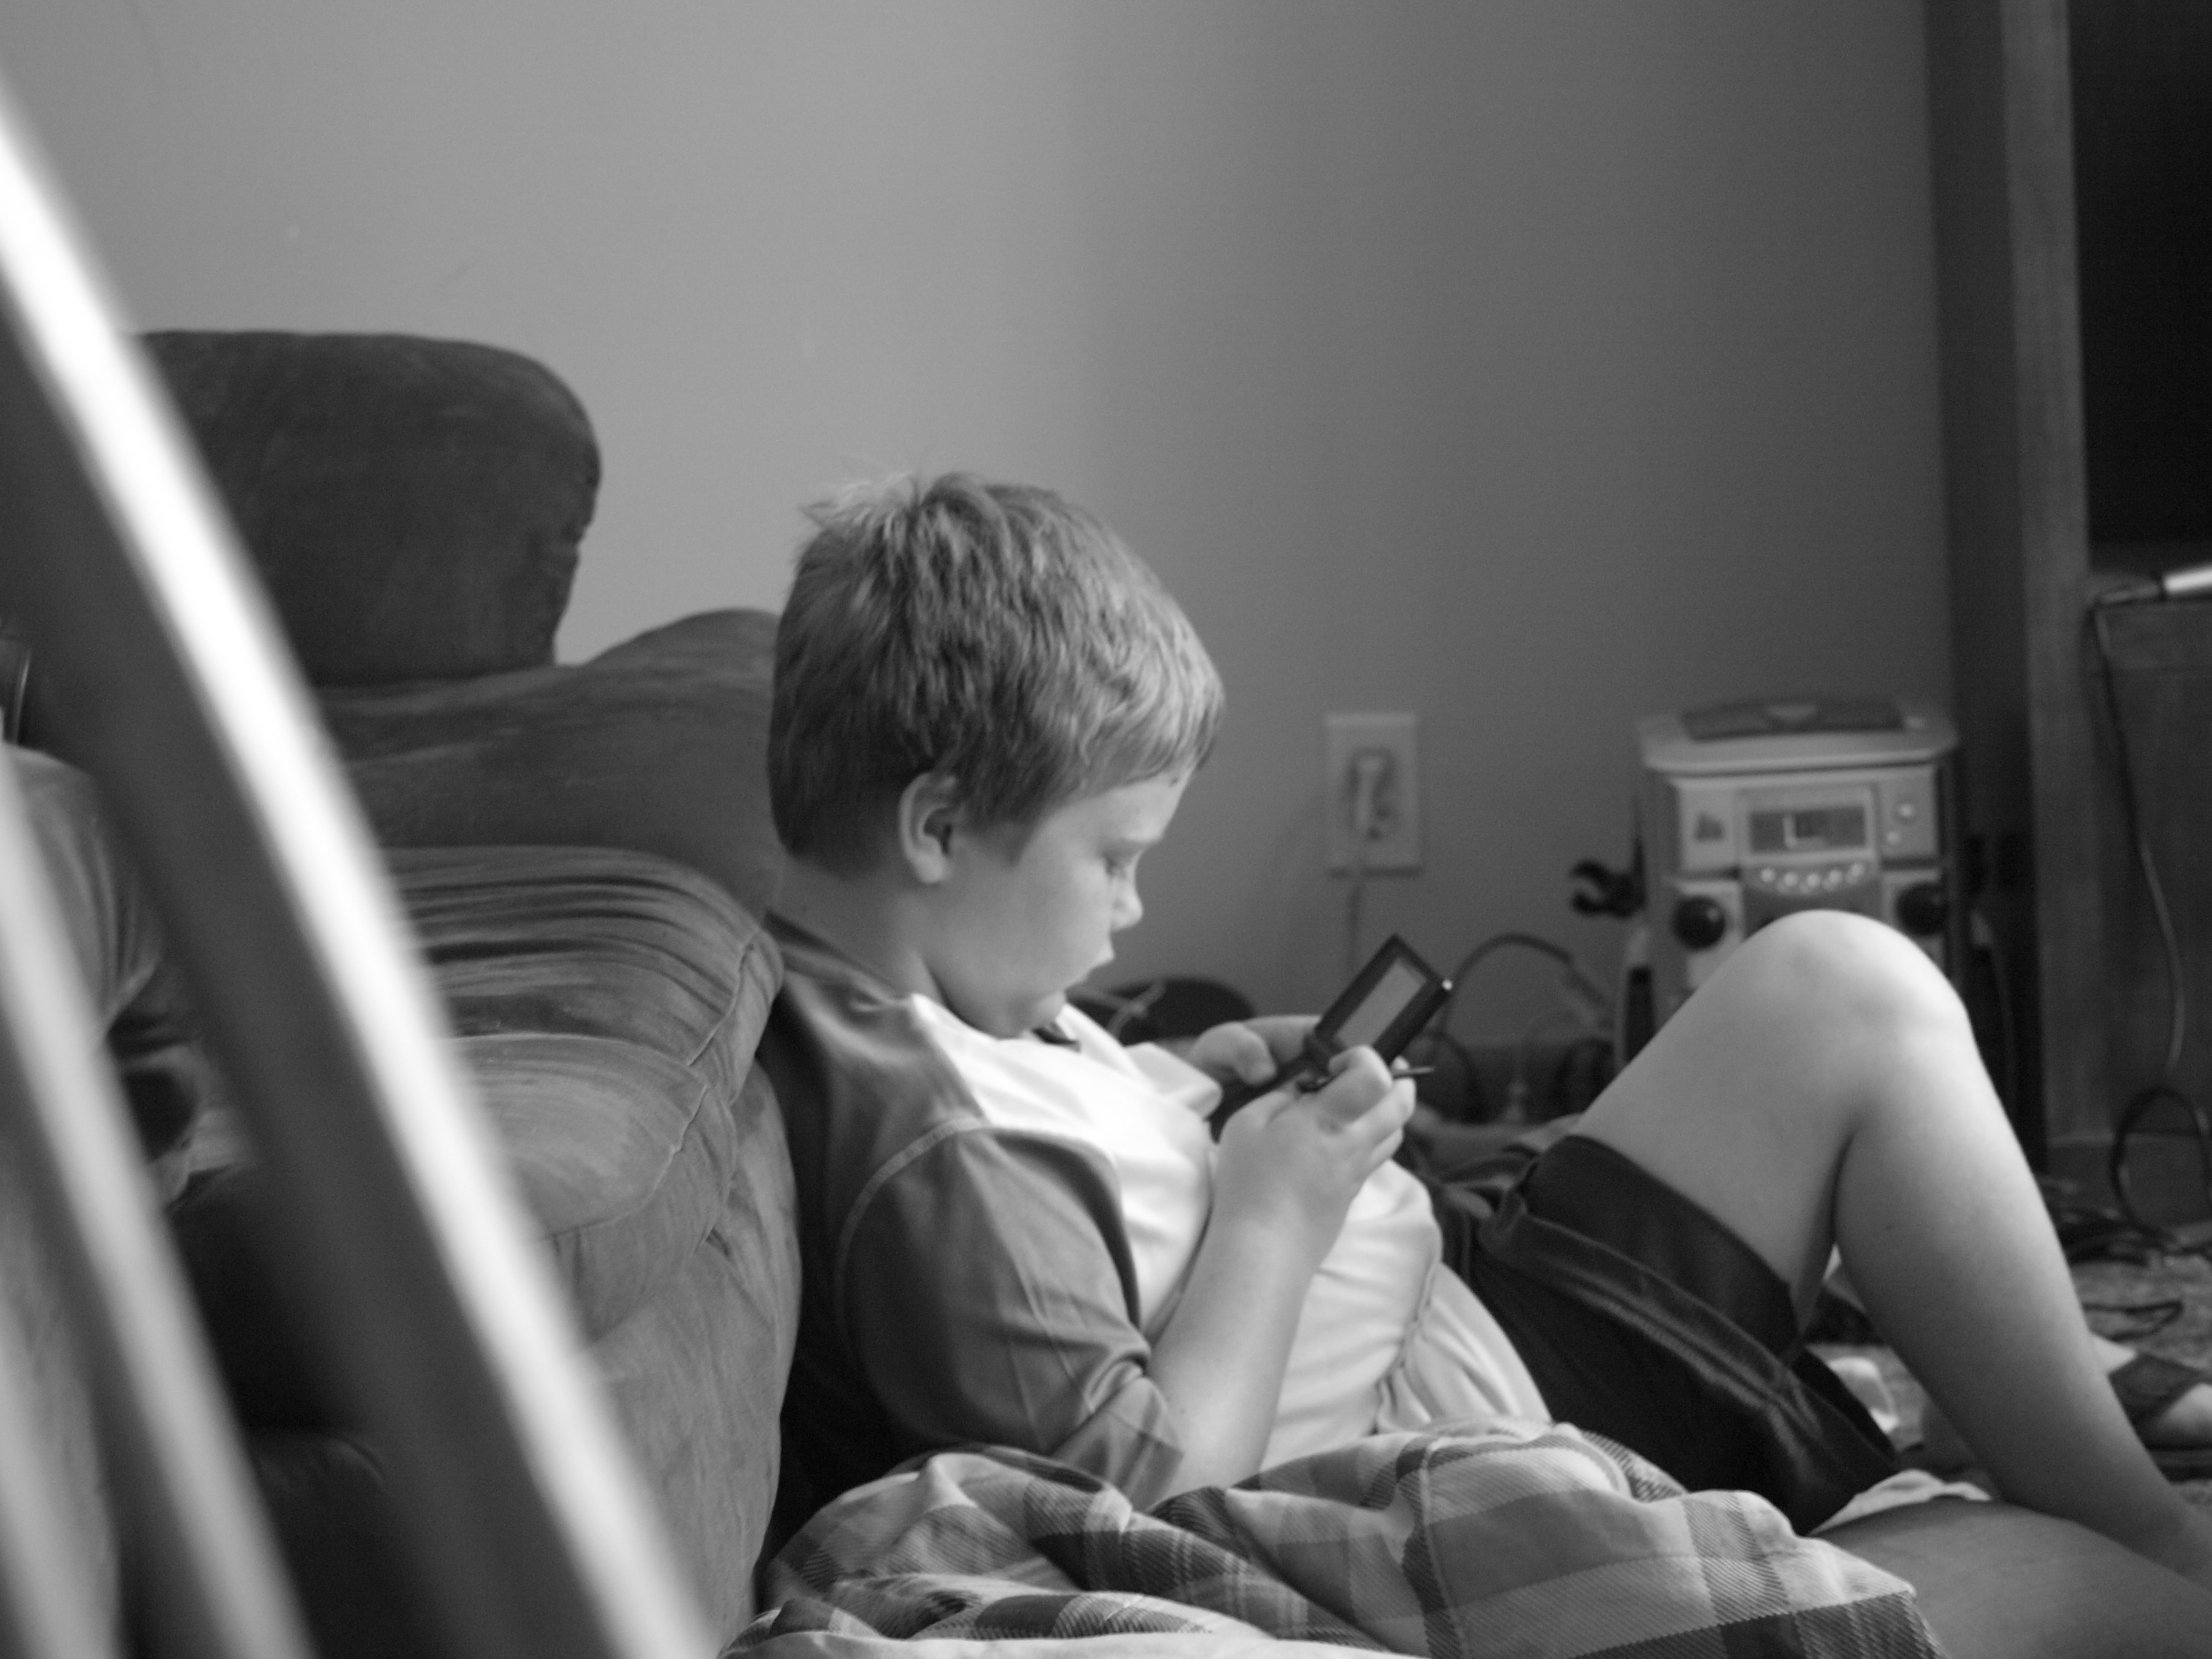 Children with Autism, ADHD, more likely to Suffer Video Game Addiction